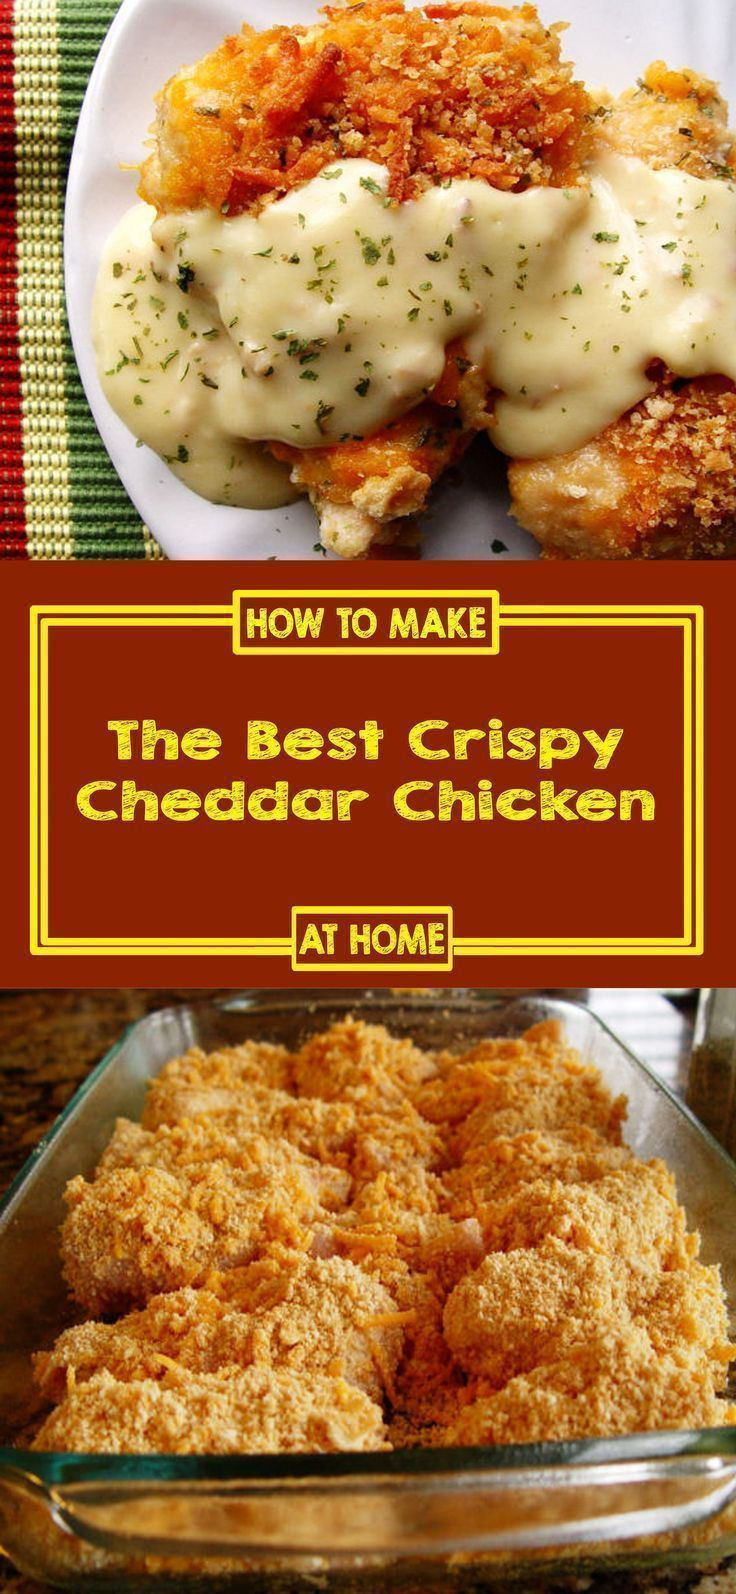 The Best Crispy Cheddar Chicken #crispycheddarchicken The Best Crispy Cheddar Chicken #crispycheddarchicken The Best Crispy Cheddar Chicken #crispycheddarchicken The Best Crispy Cheddar Chicken #crispycheddarchicken The Best Crispy Cheddar Chicken #crispycheddarchicken The Best Crispy Cheddar Chicken #crispycheddarchicken The Best Crispy Cheddar Chicken #crispycheddarchicken The Best Crispy Cheddar Chicken #crispycheddarchicken The Best Crispy Cheddar Chicken #crispycheddarchicken The Best Crisp #crispycheddarchicken